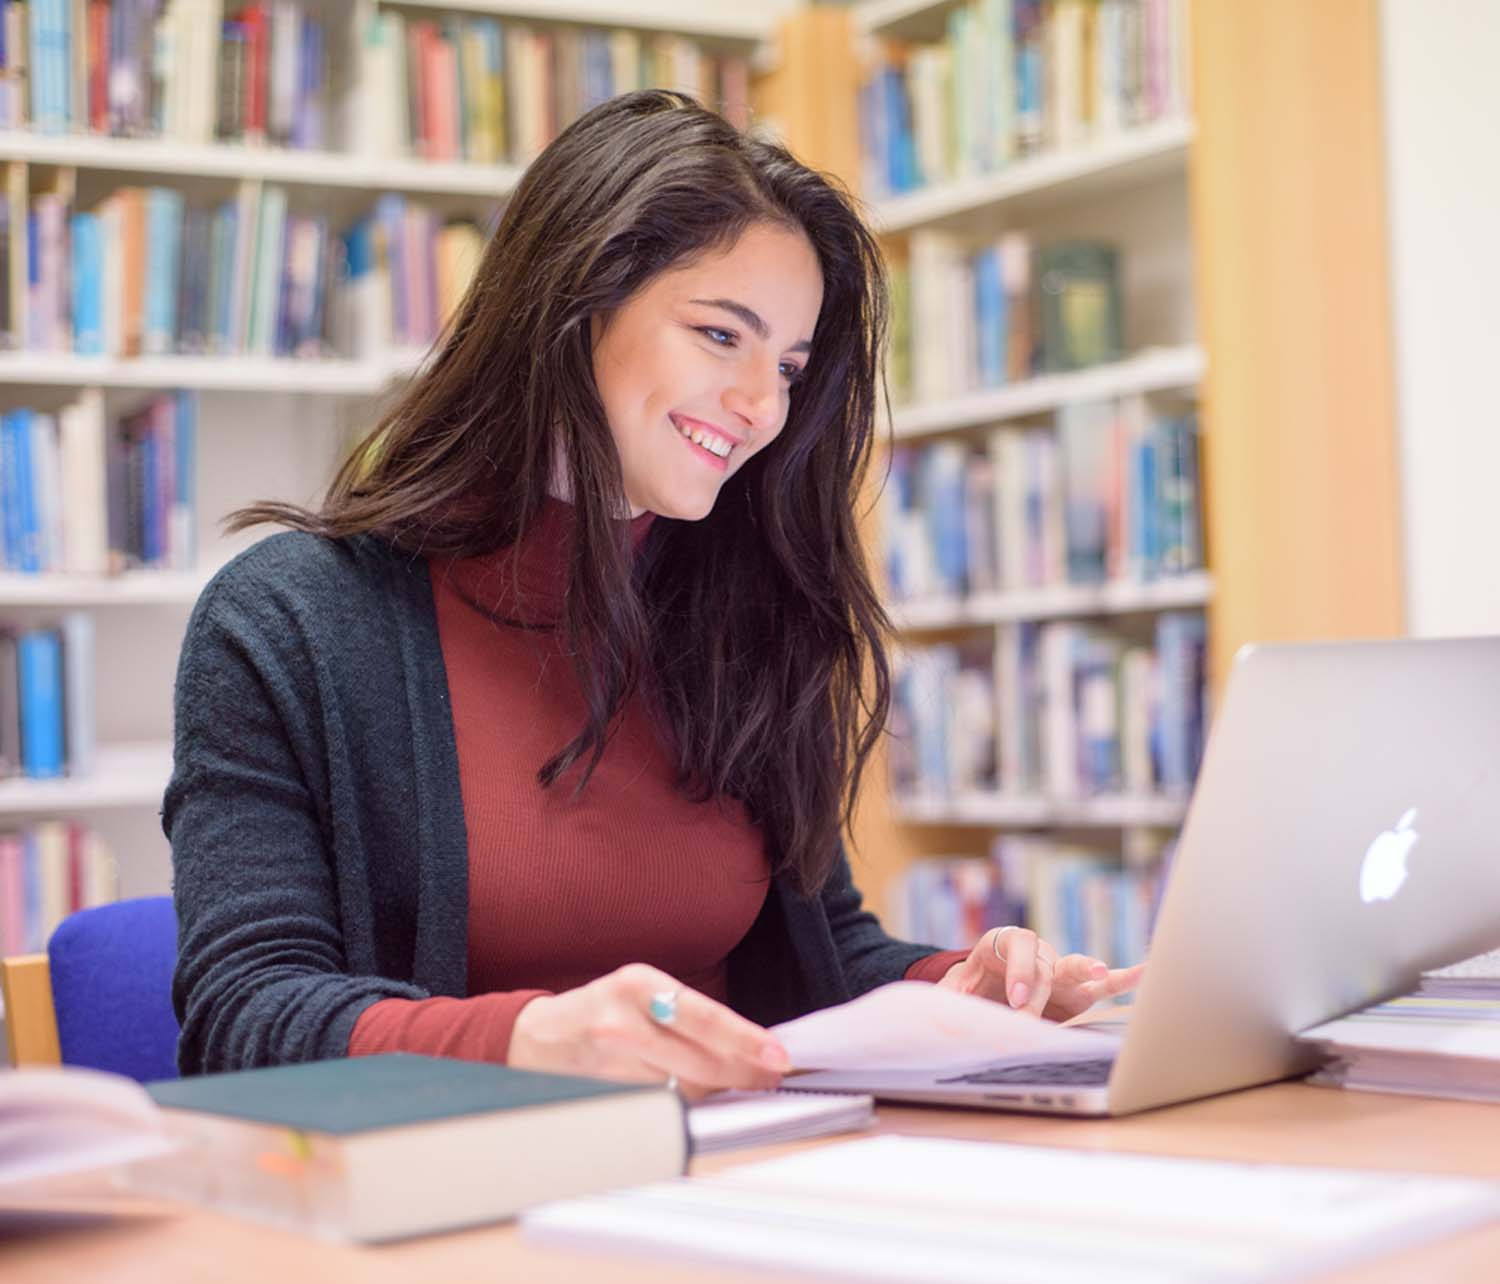 Female studying in library